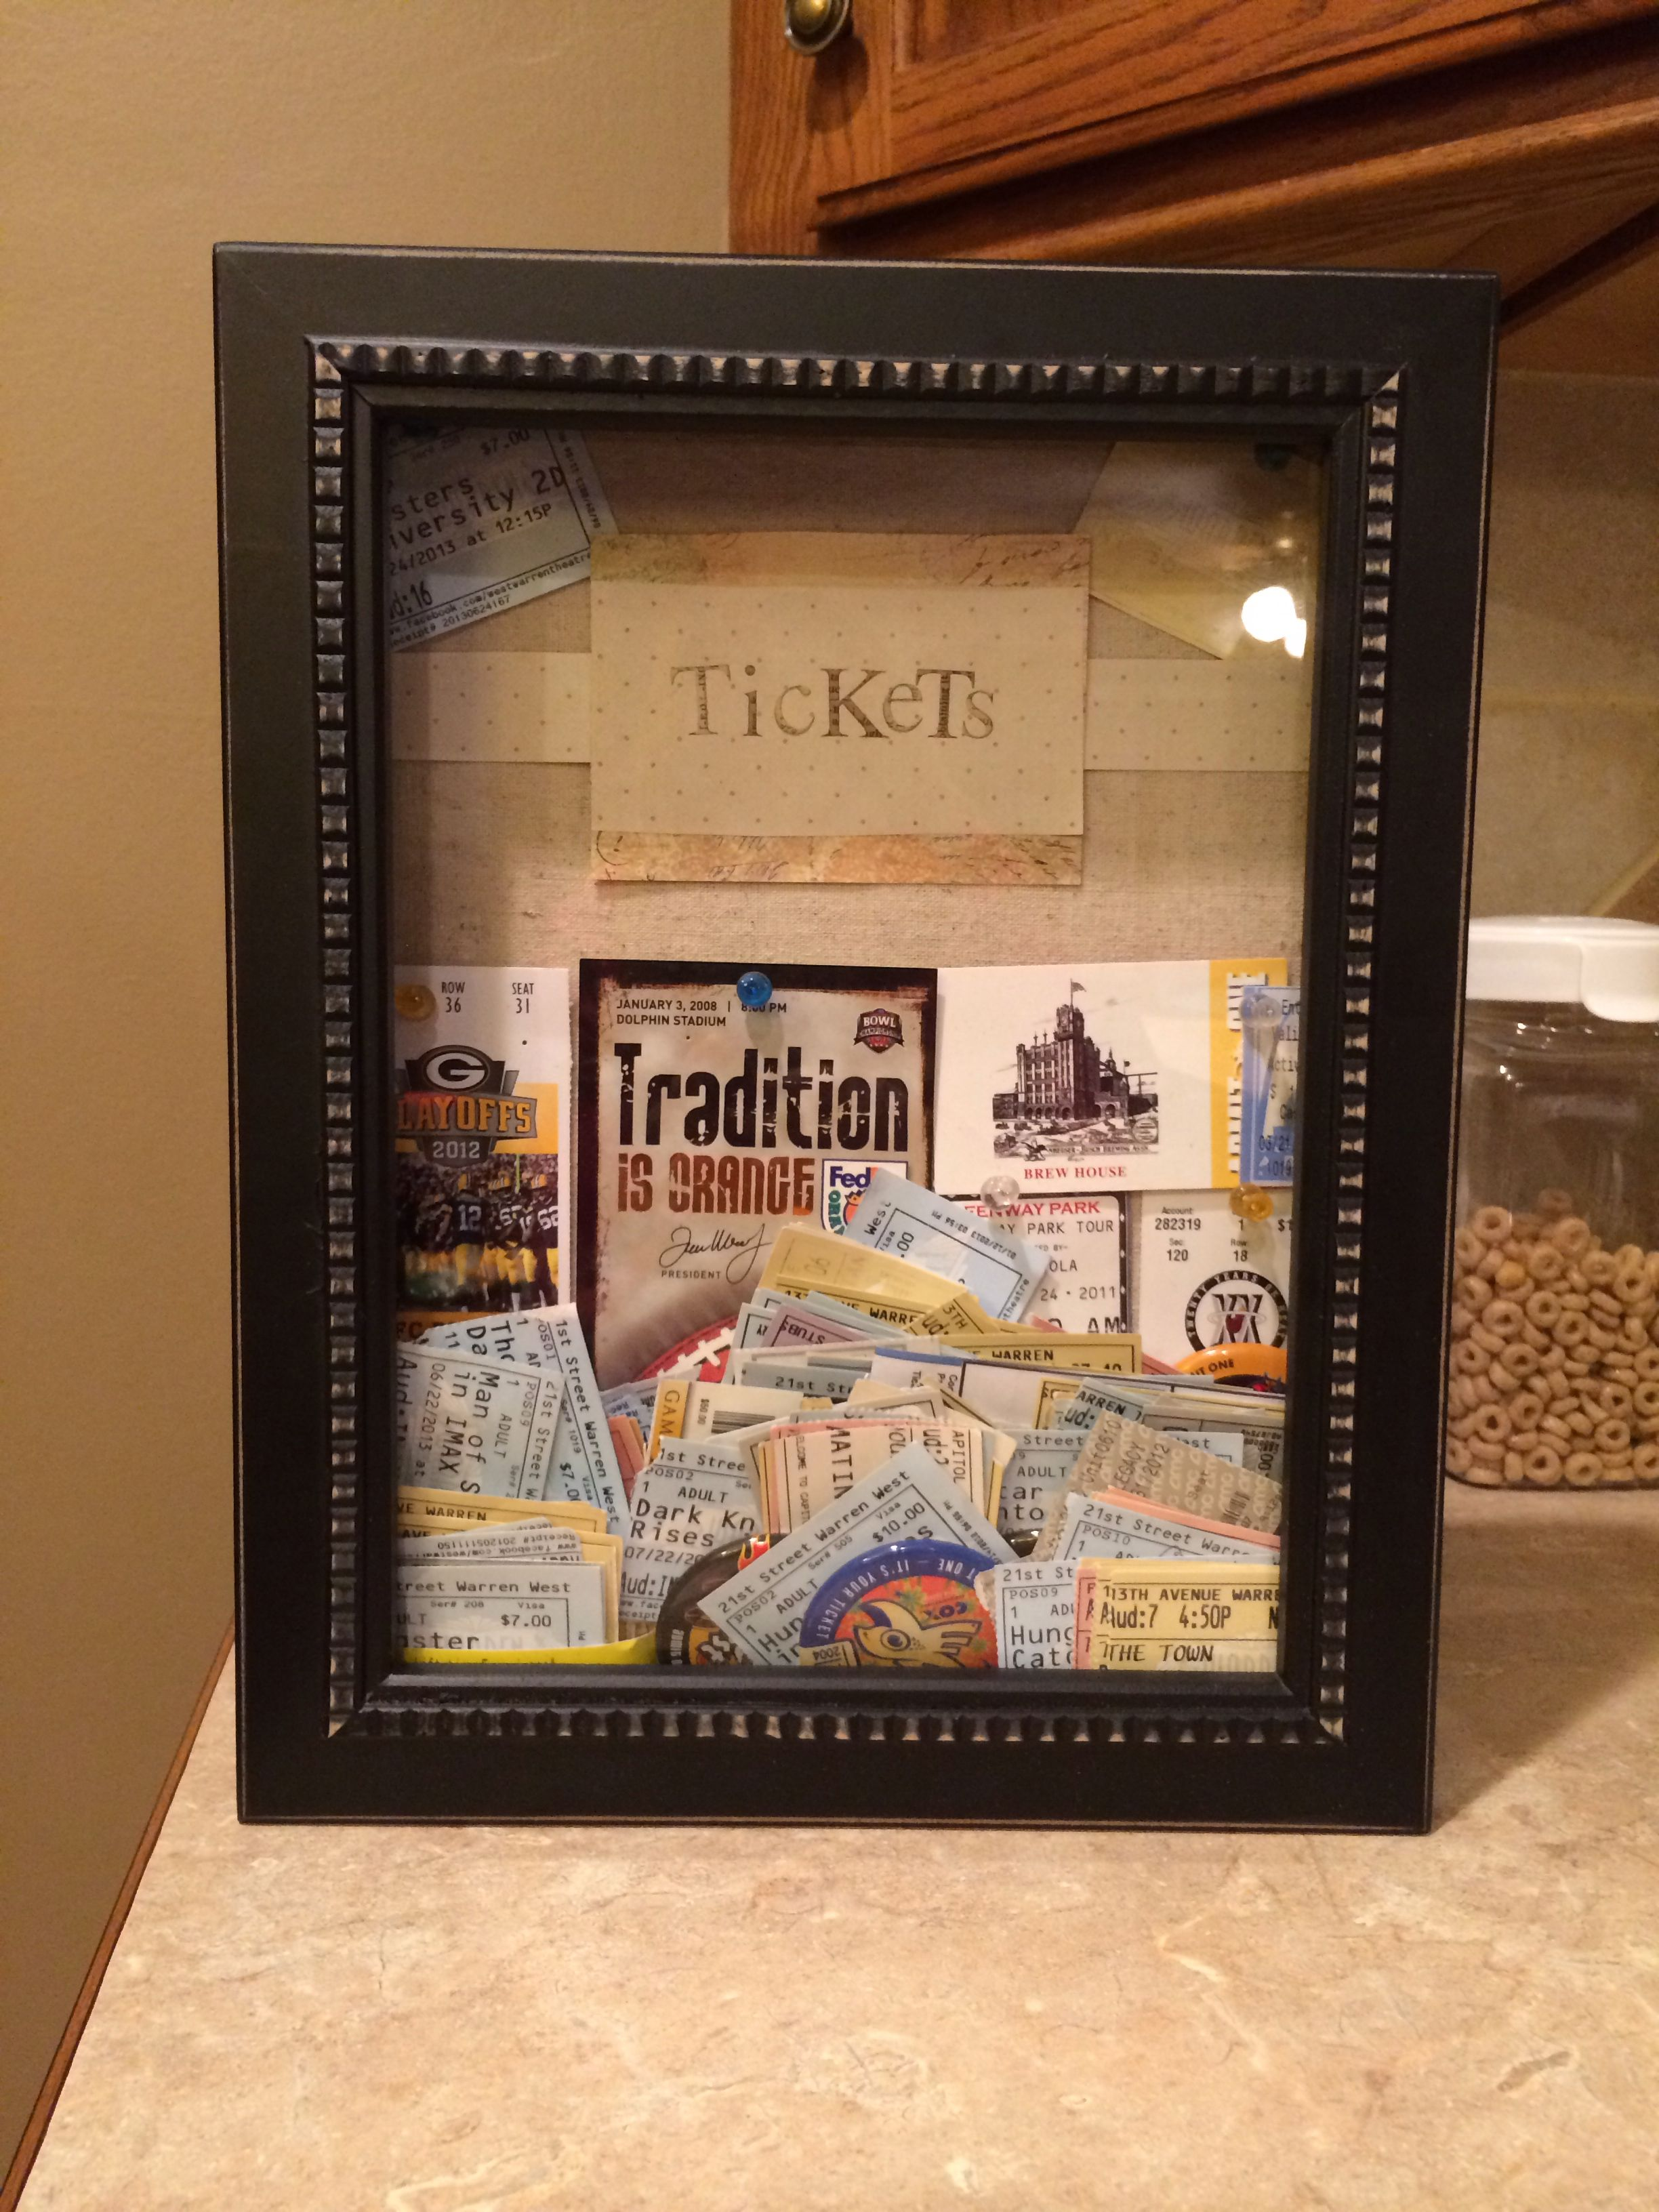 Ticket Stub Shadow Box Shadow Box From Hobby Lobby Easy Diy Project Diy Projects For Bedroom Diy Projects Gadgets Diy Projects For Couples